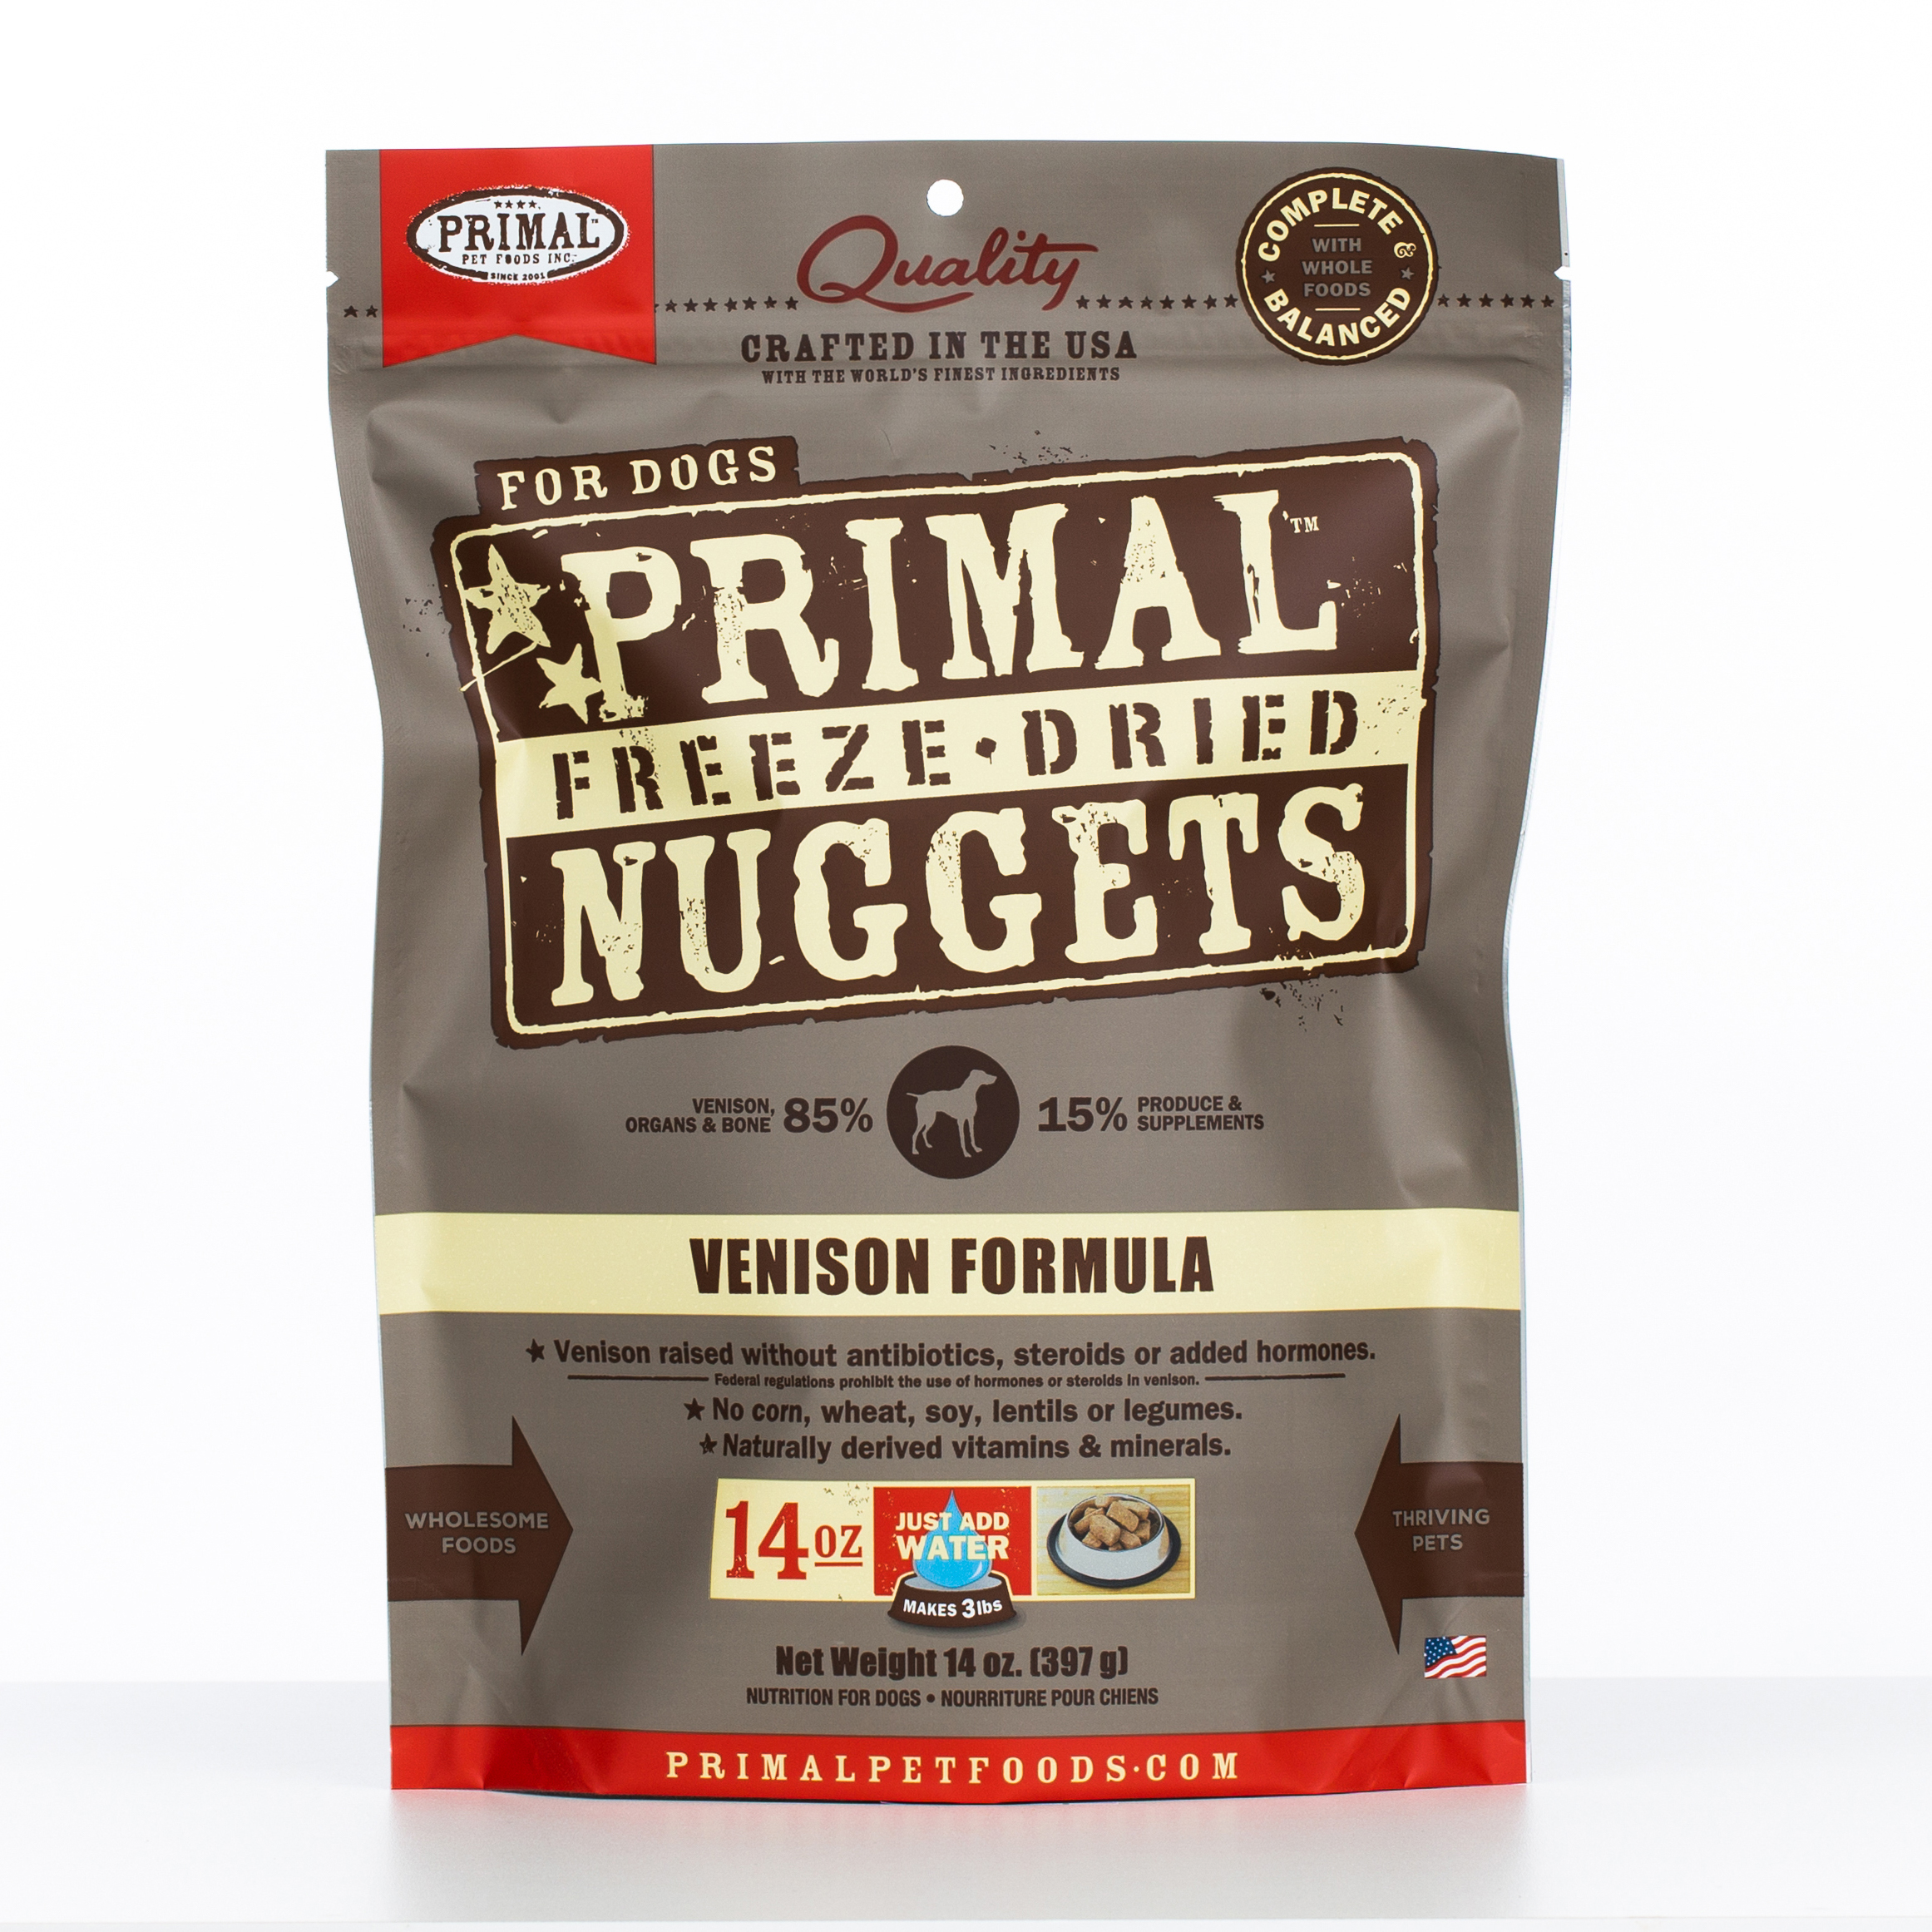 Primal Raw Freeze-Dried Nuggets Venison Formula Dog Food, 14-oz